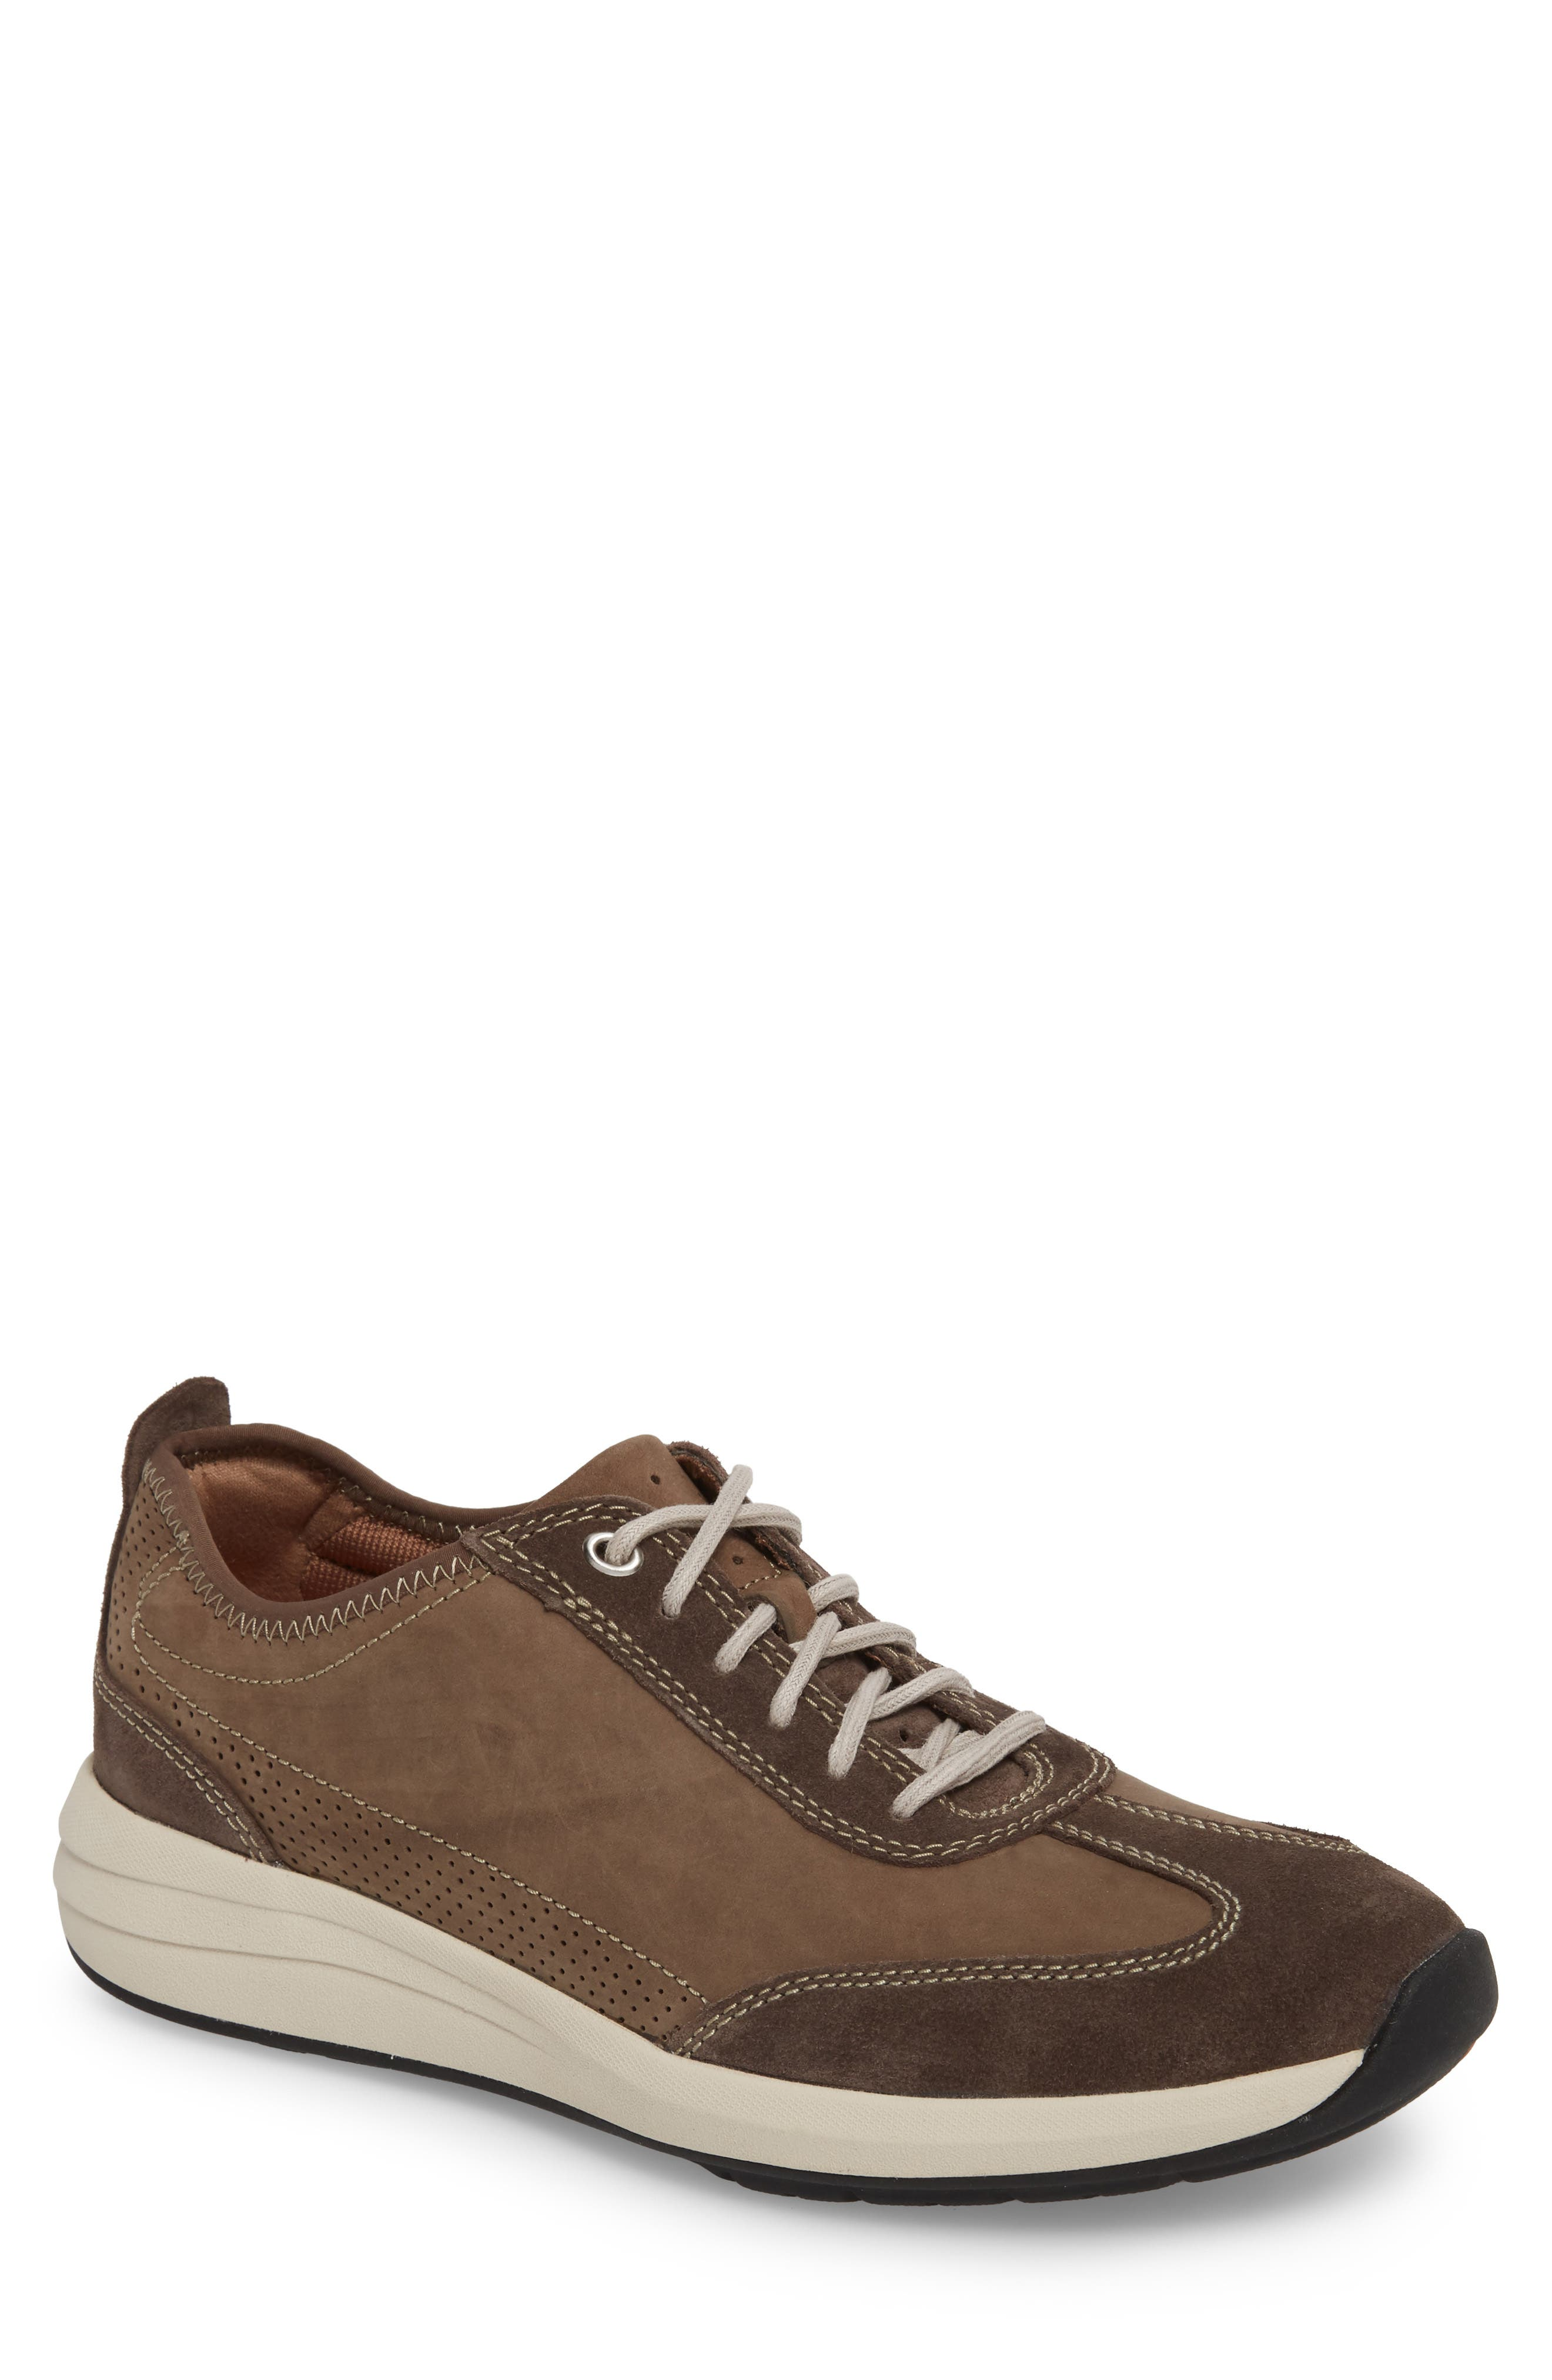 Clarks<sup>®</sup> Un Coast Low Top Sneaker,                         Main,                         color, 279